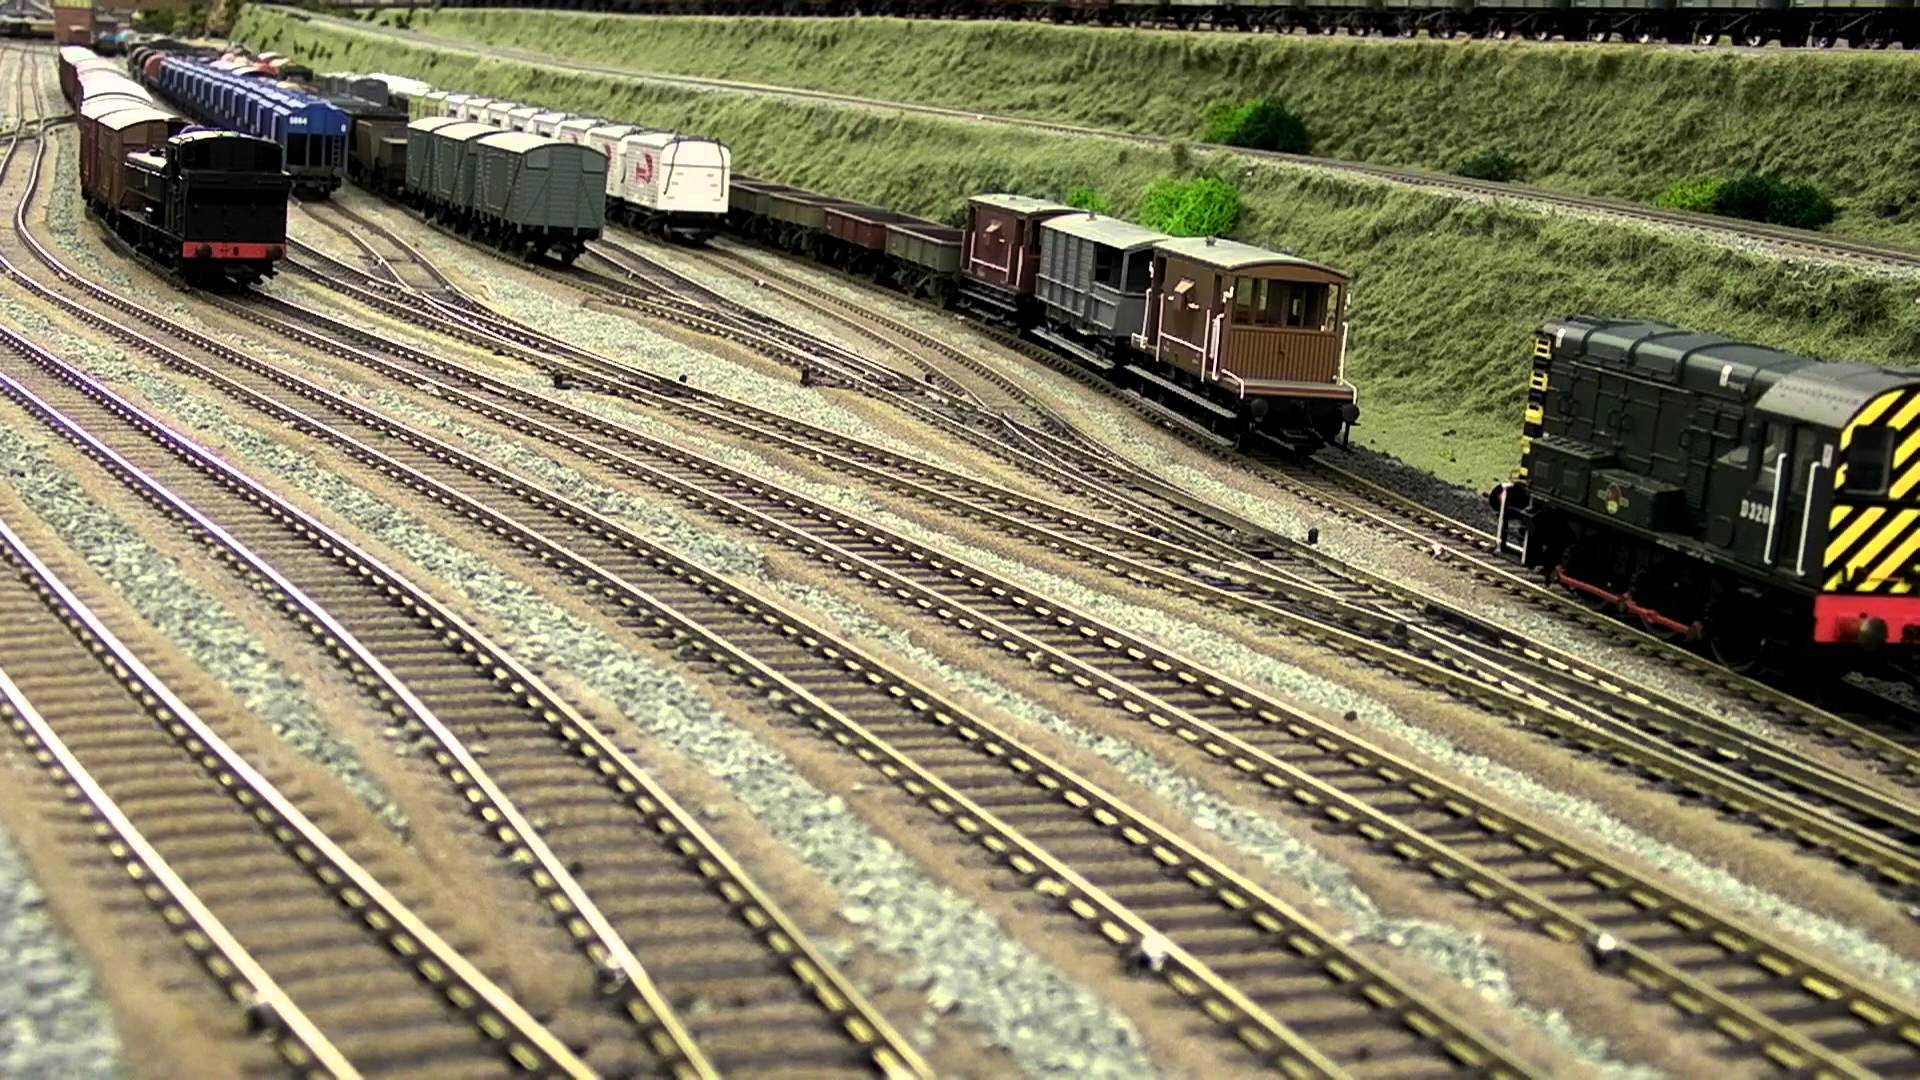 MODEL-TRAIN train toy model railroad minature trains tracks